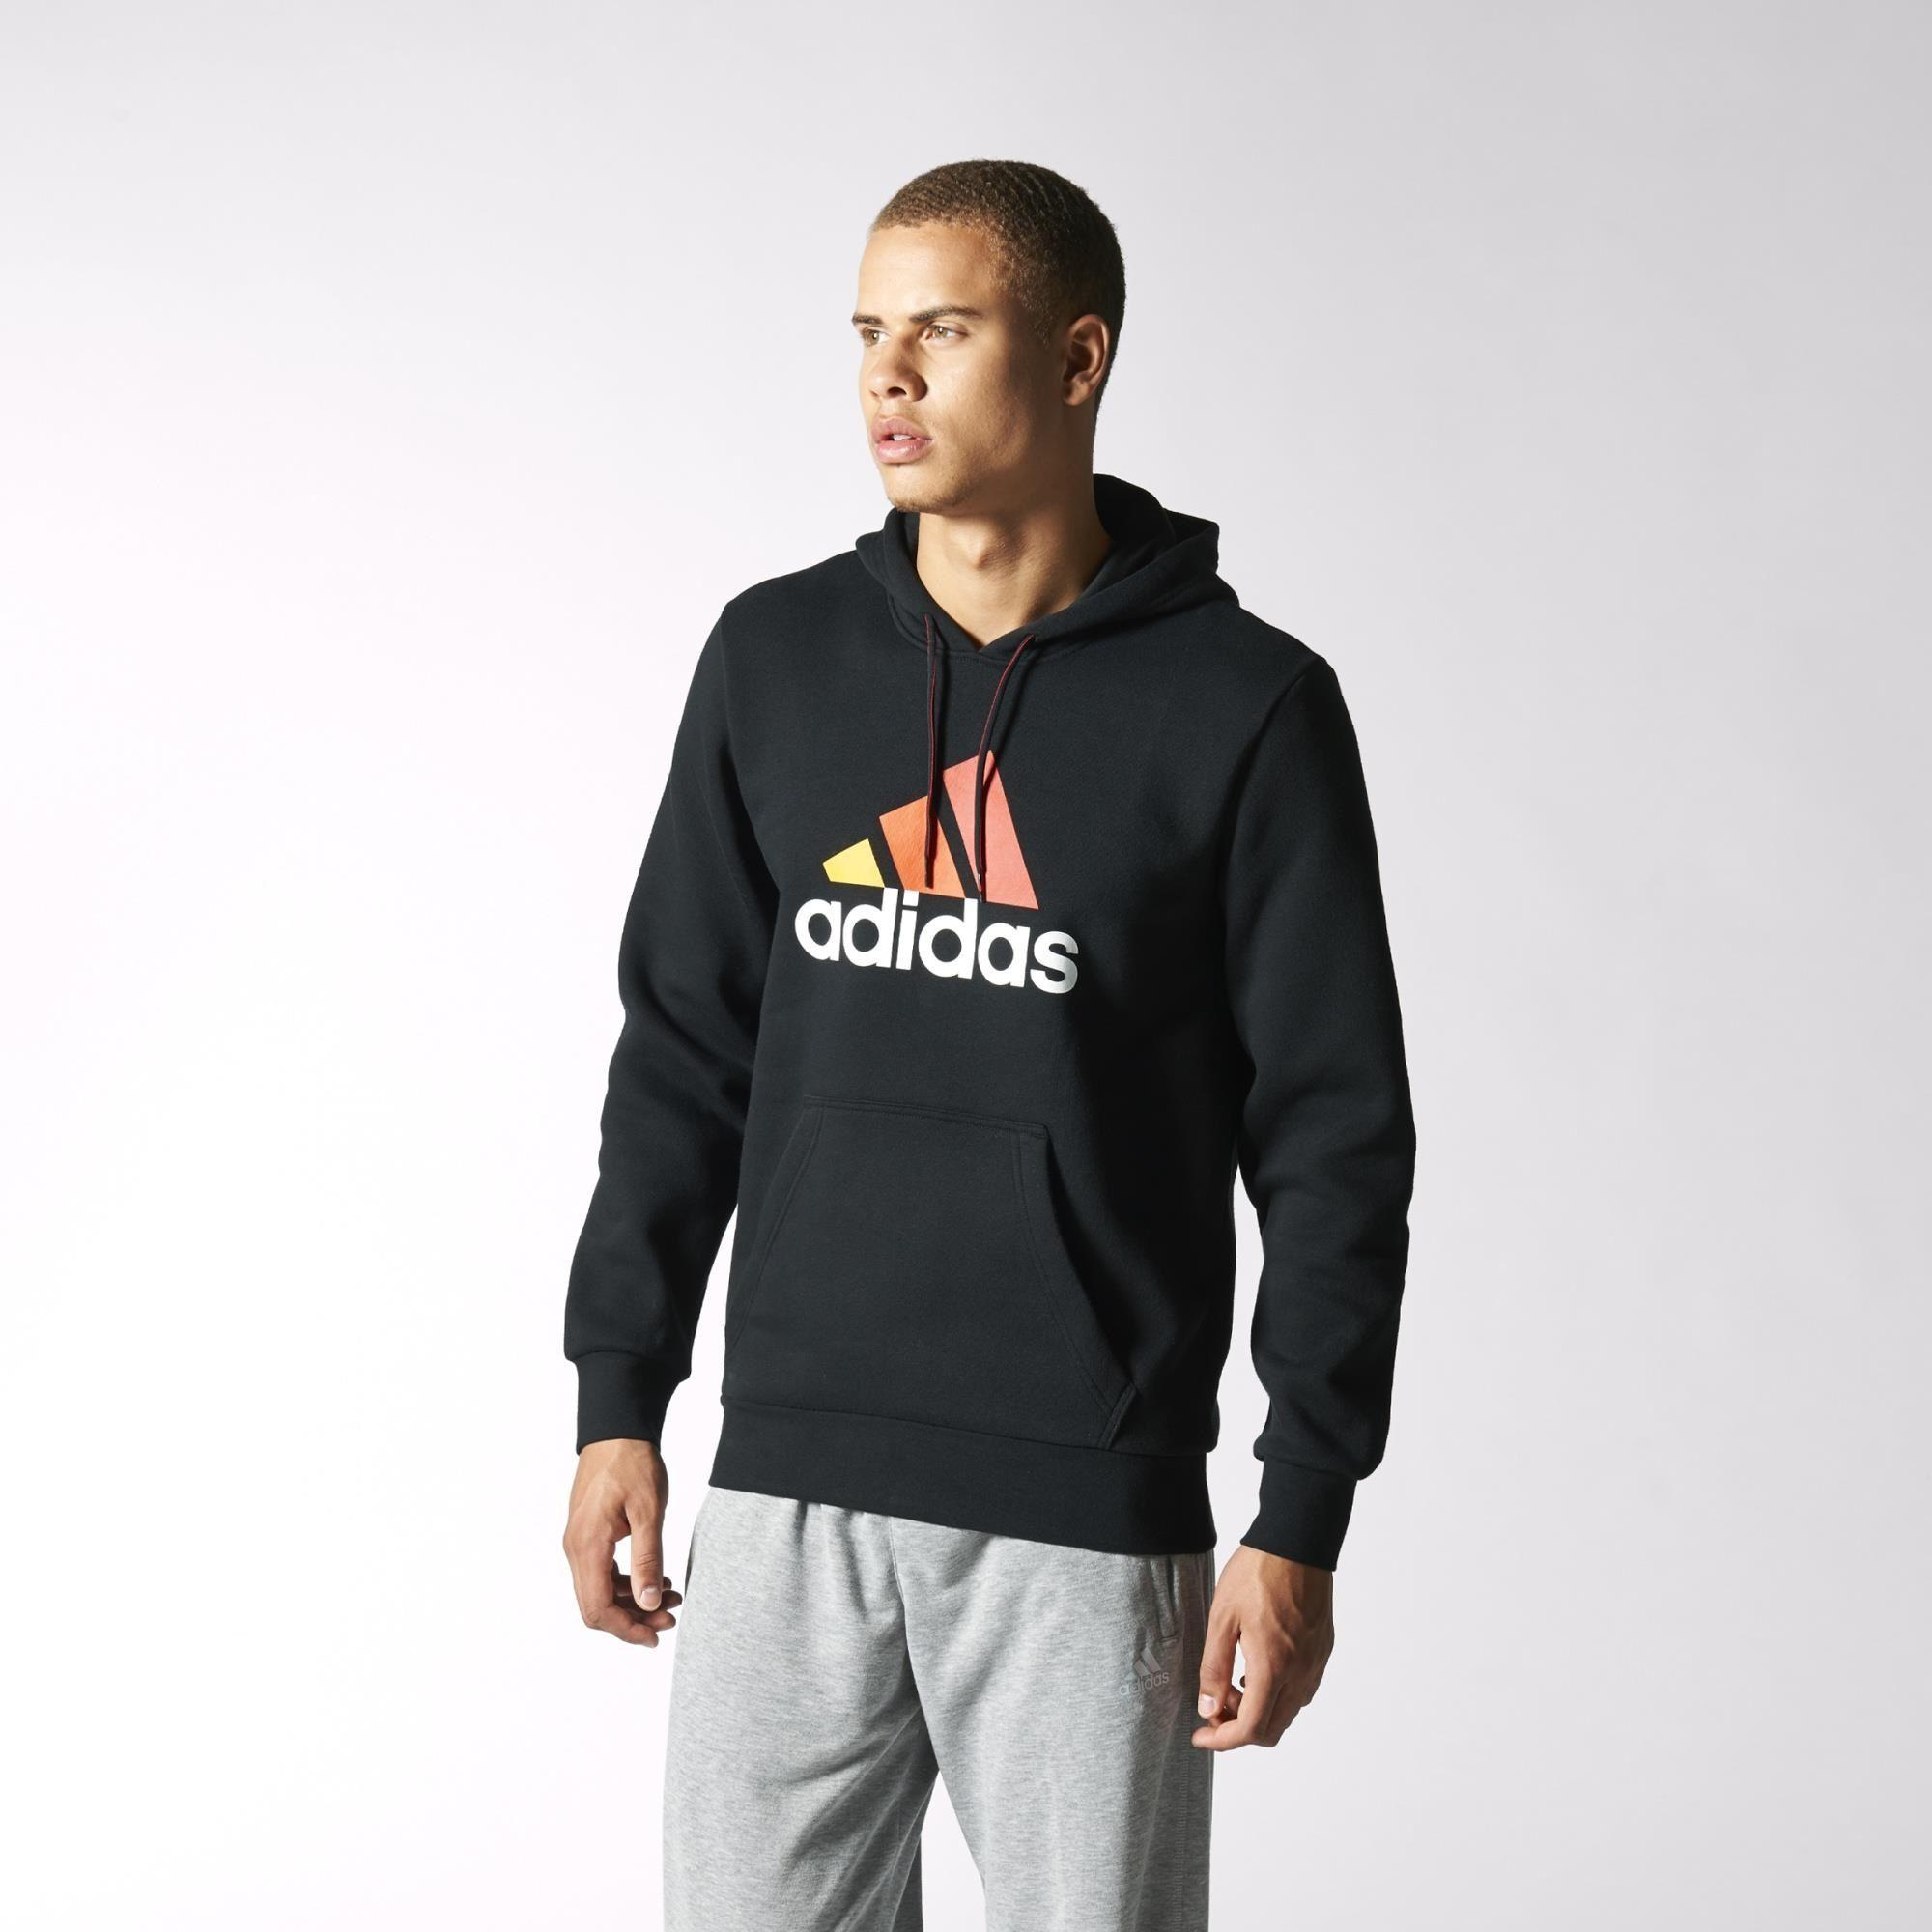 adidas mens essentials logo hoodie black. Black Bedroom Furniture Sets. Home Design Ideas